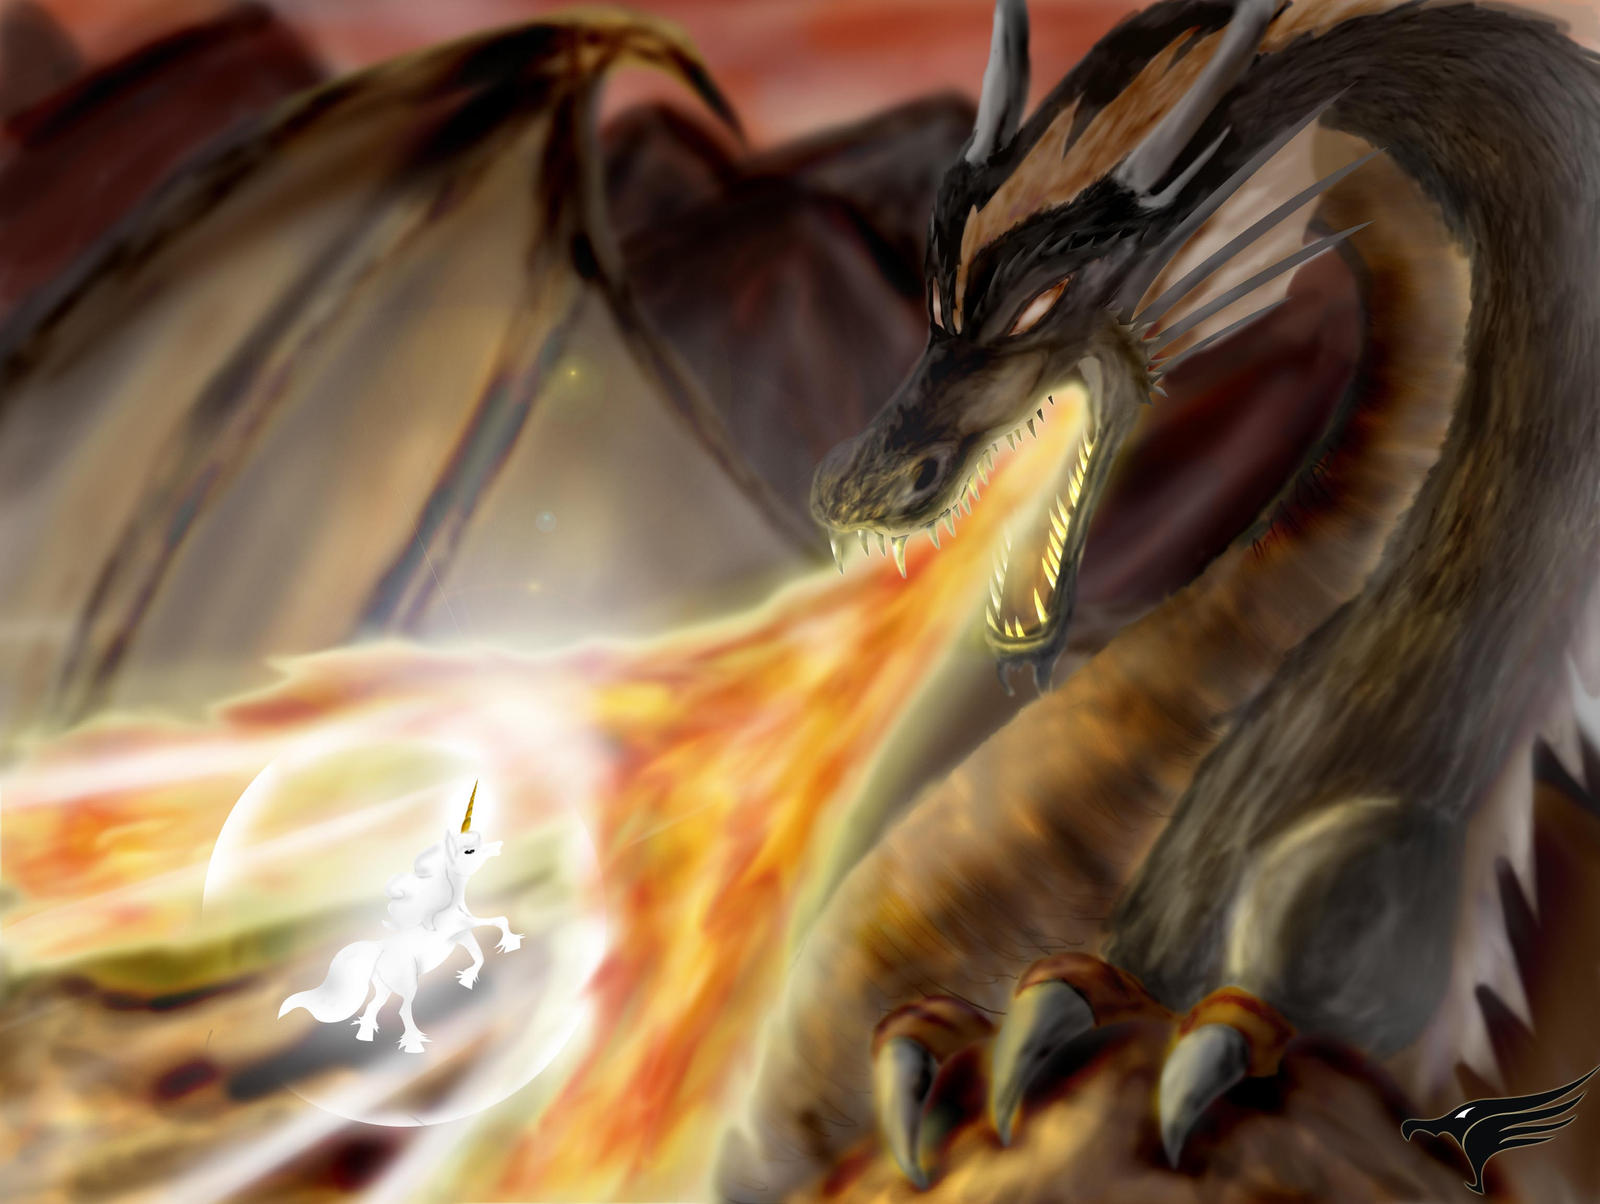 Dragon Vs Unicornio By Youcan619 On DeviantArt